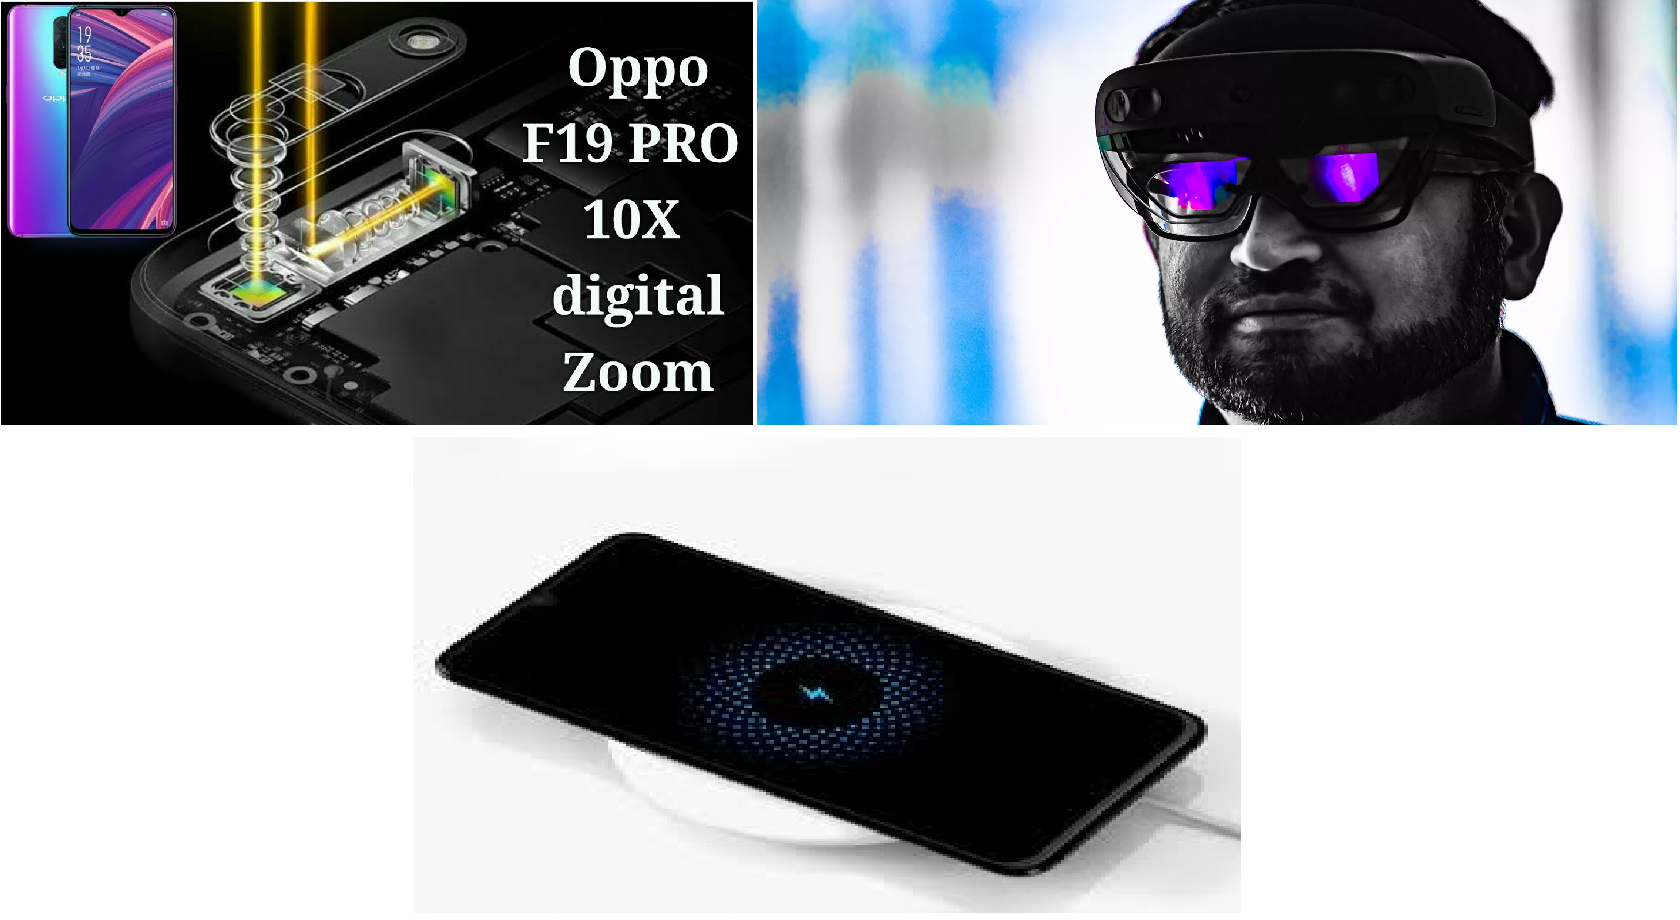 Best of Mobile World Congress 2019 product announcements (other than smartphones)